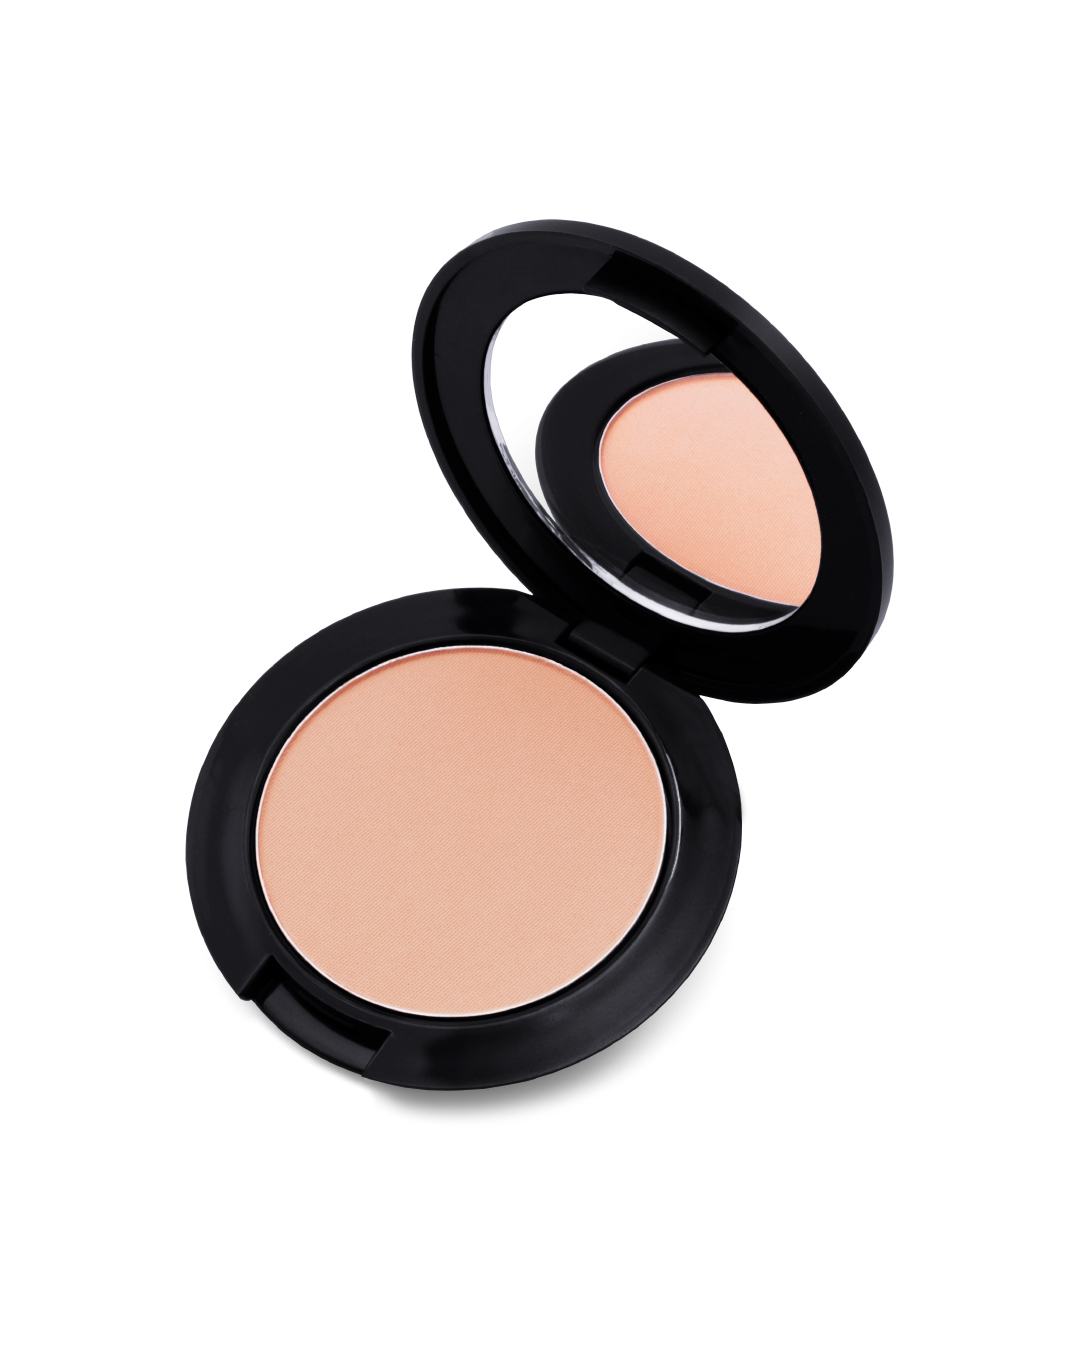 WHEA - MICRONIZED PRESSED POWDER